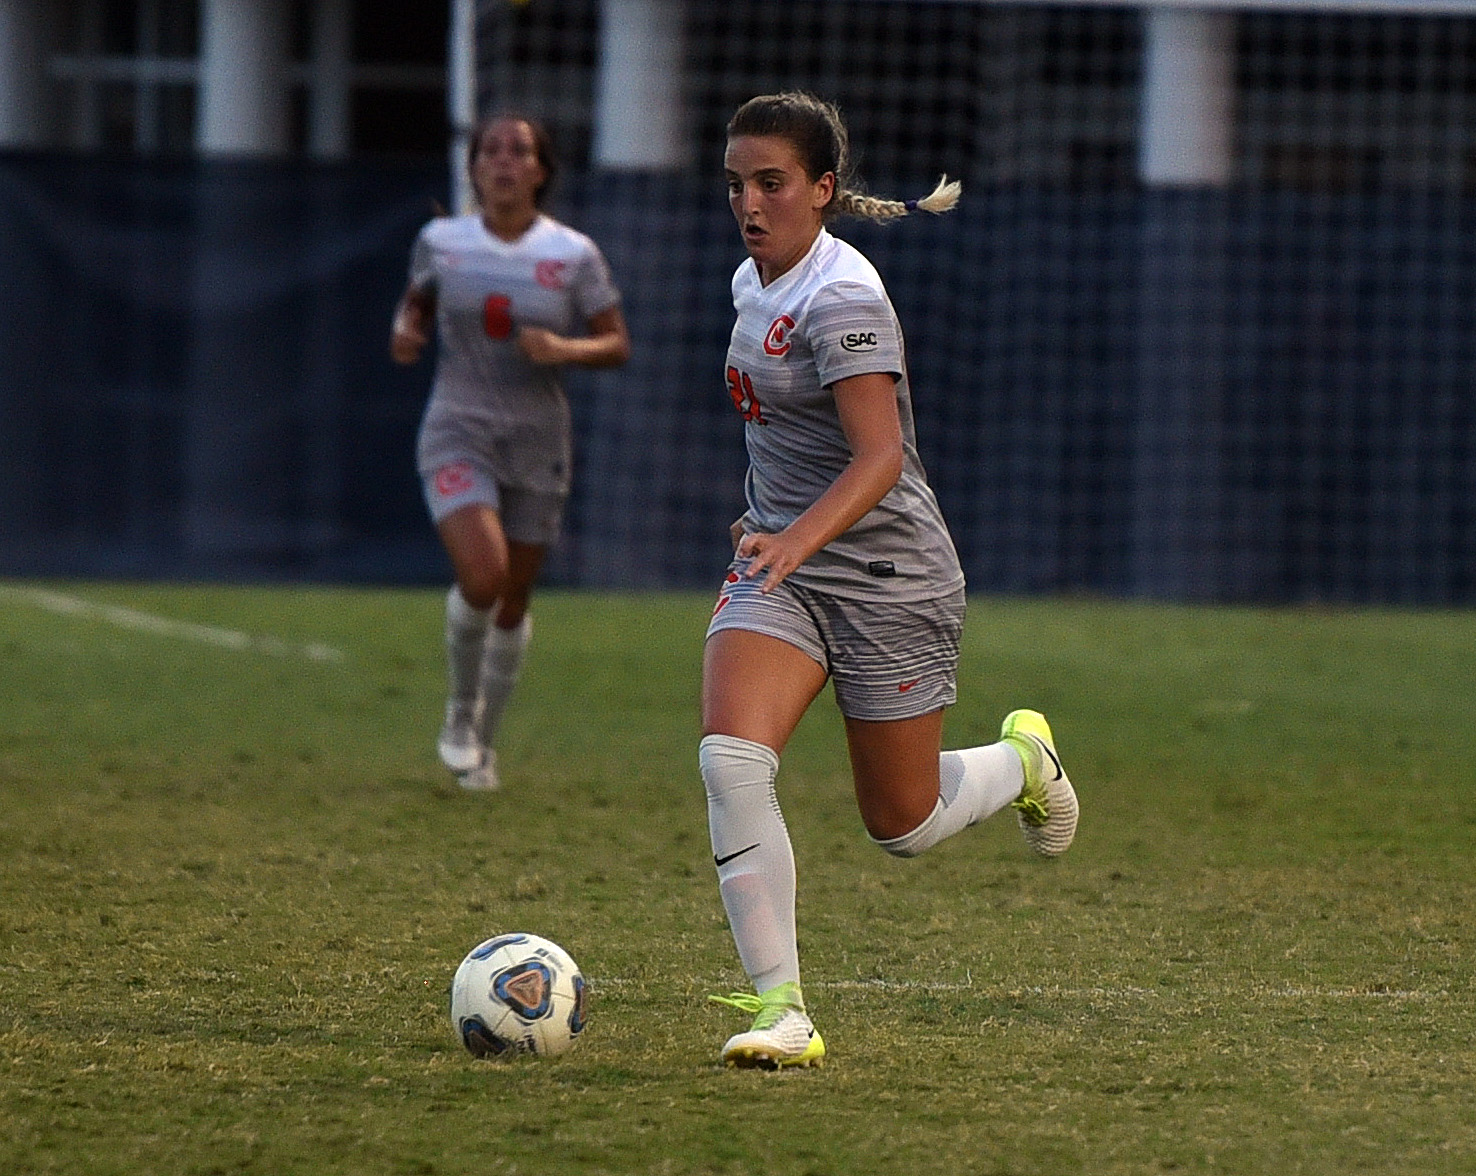 No. 9 Eagles push past Railsplitters behind two goals from Futrell after eventful second half